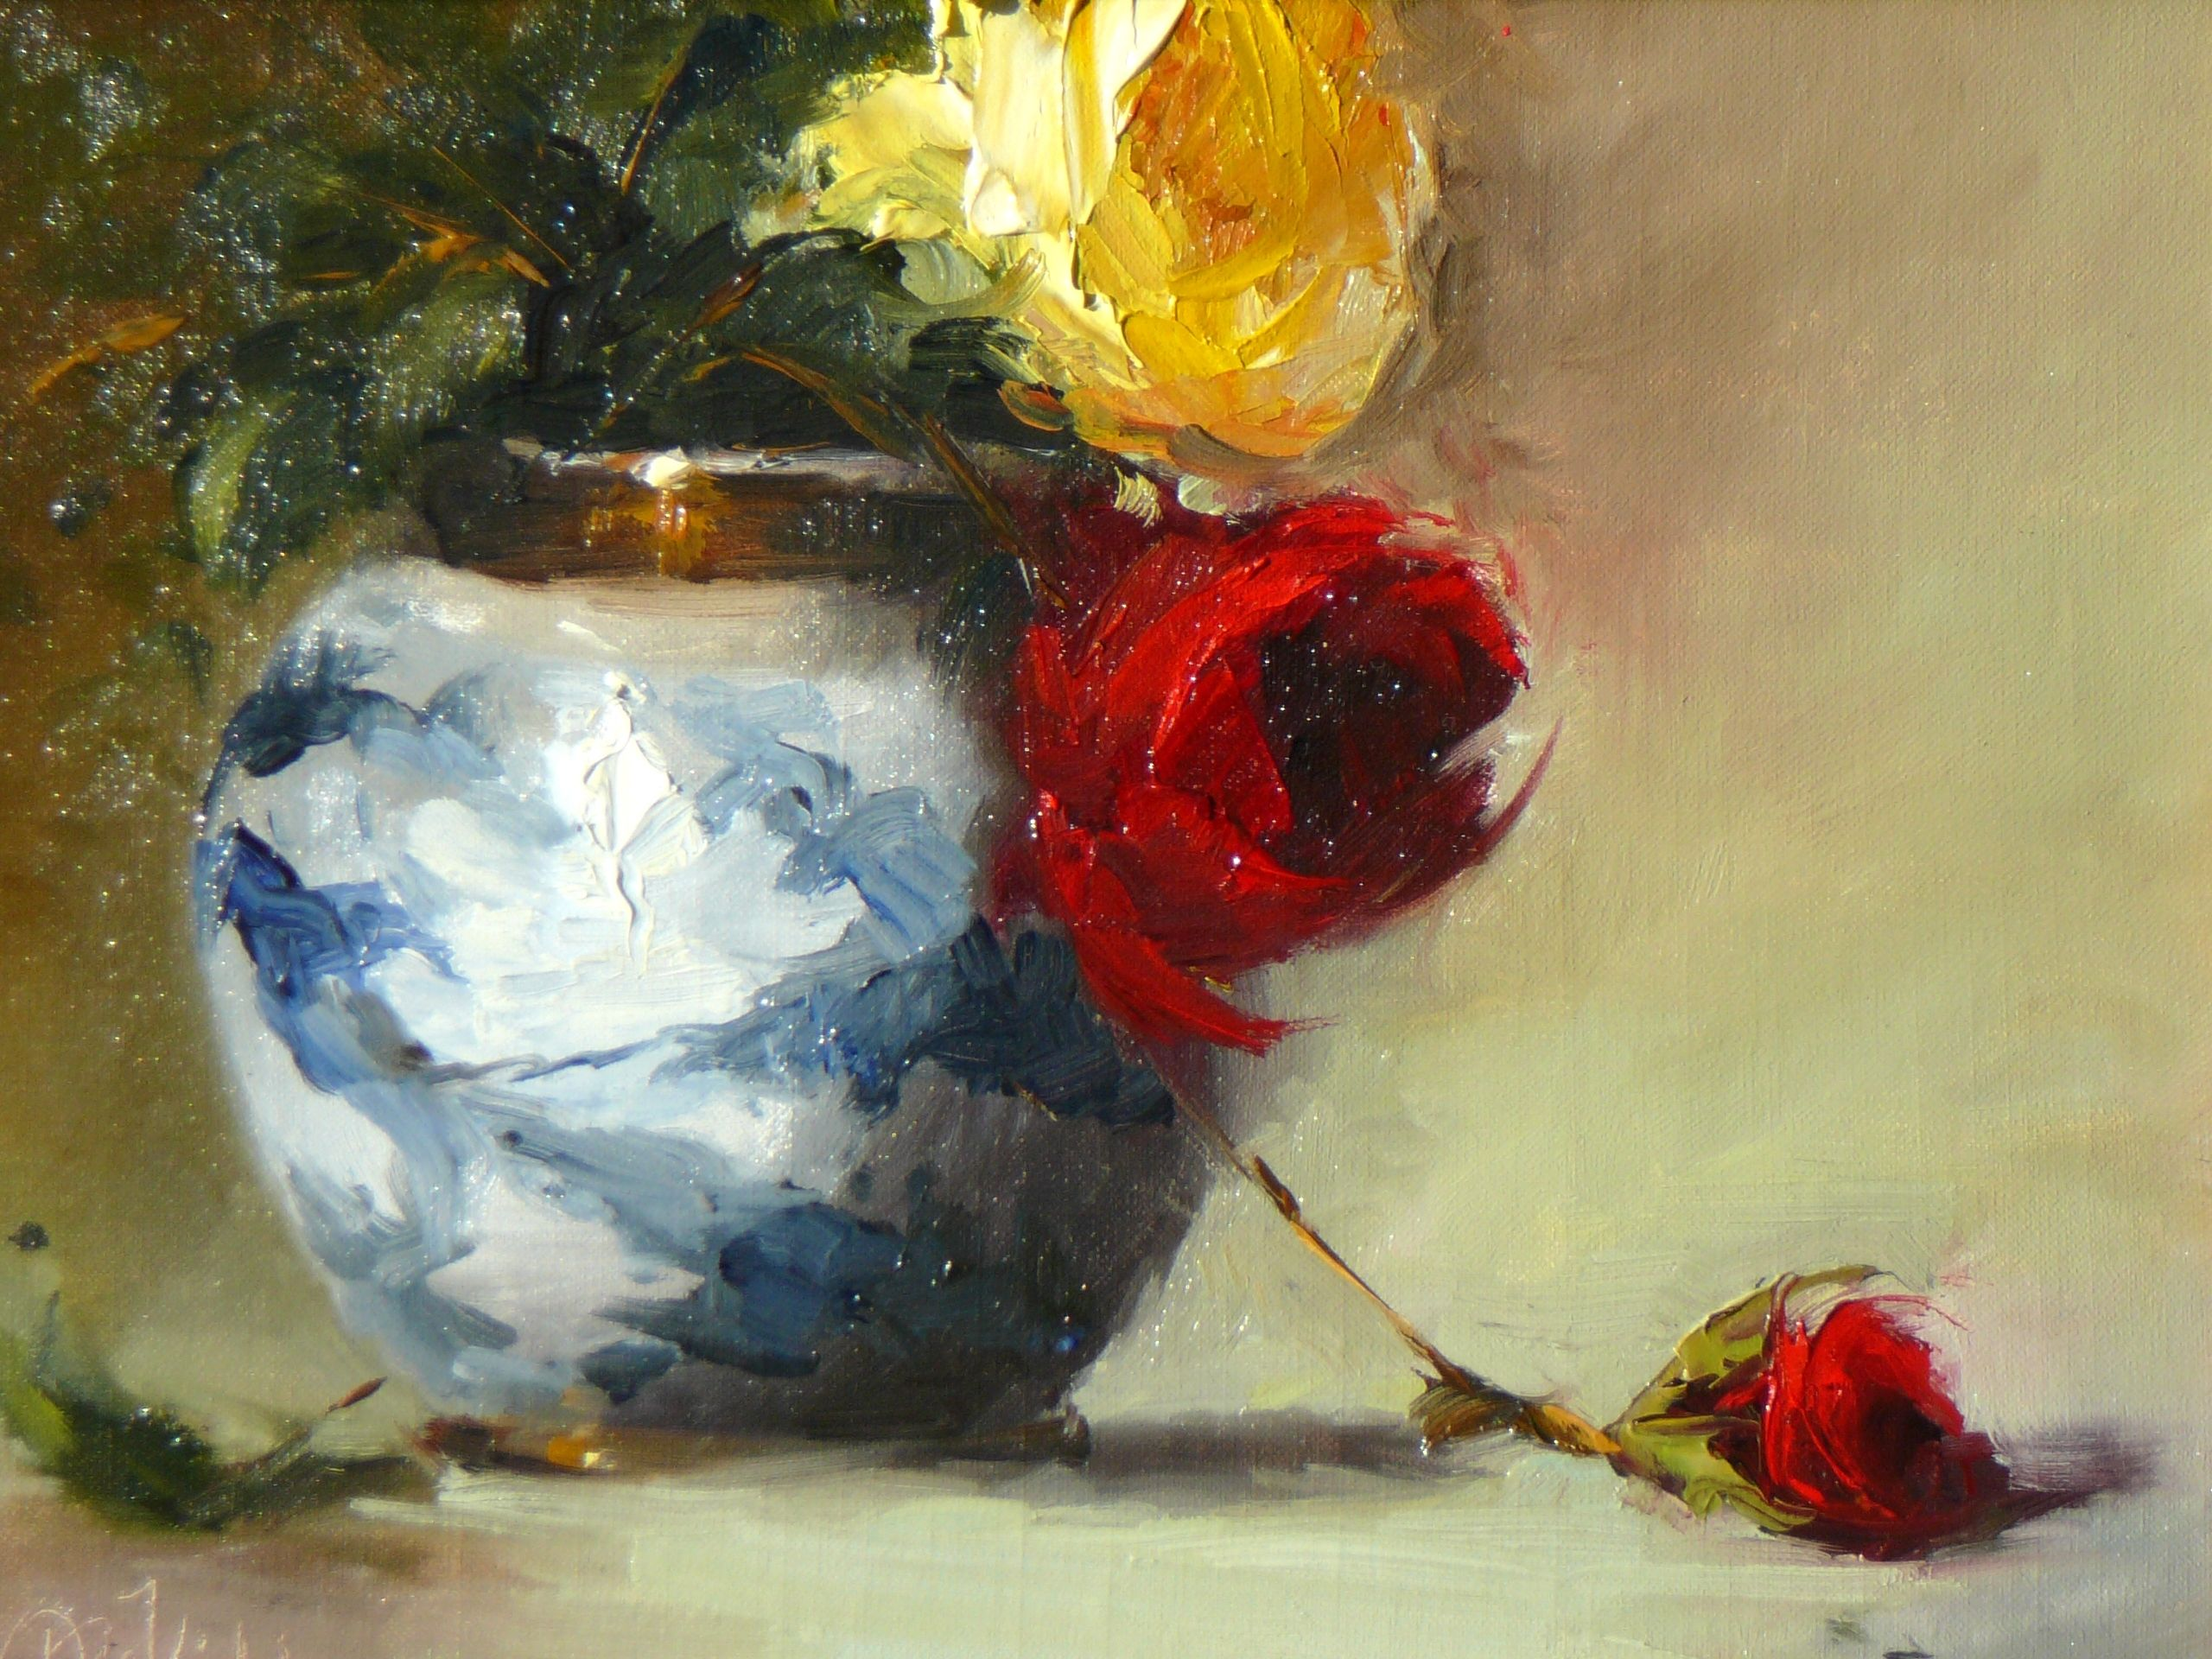 RED ROSE YELLOW ROSE, BY DEE KIRKHAM